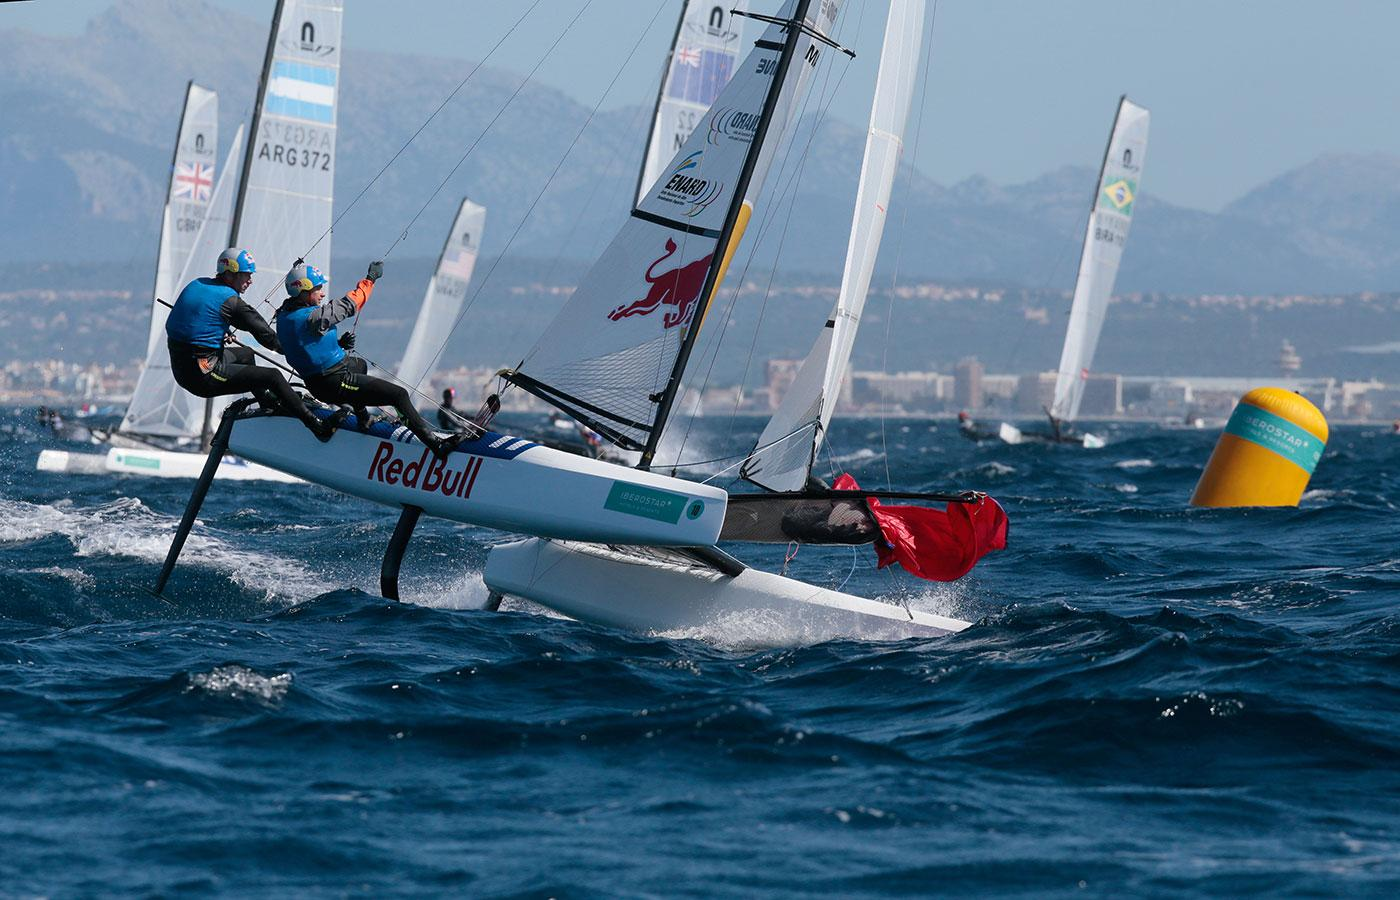 Nacra 17 is Olympic sailing catamaran